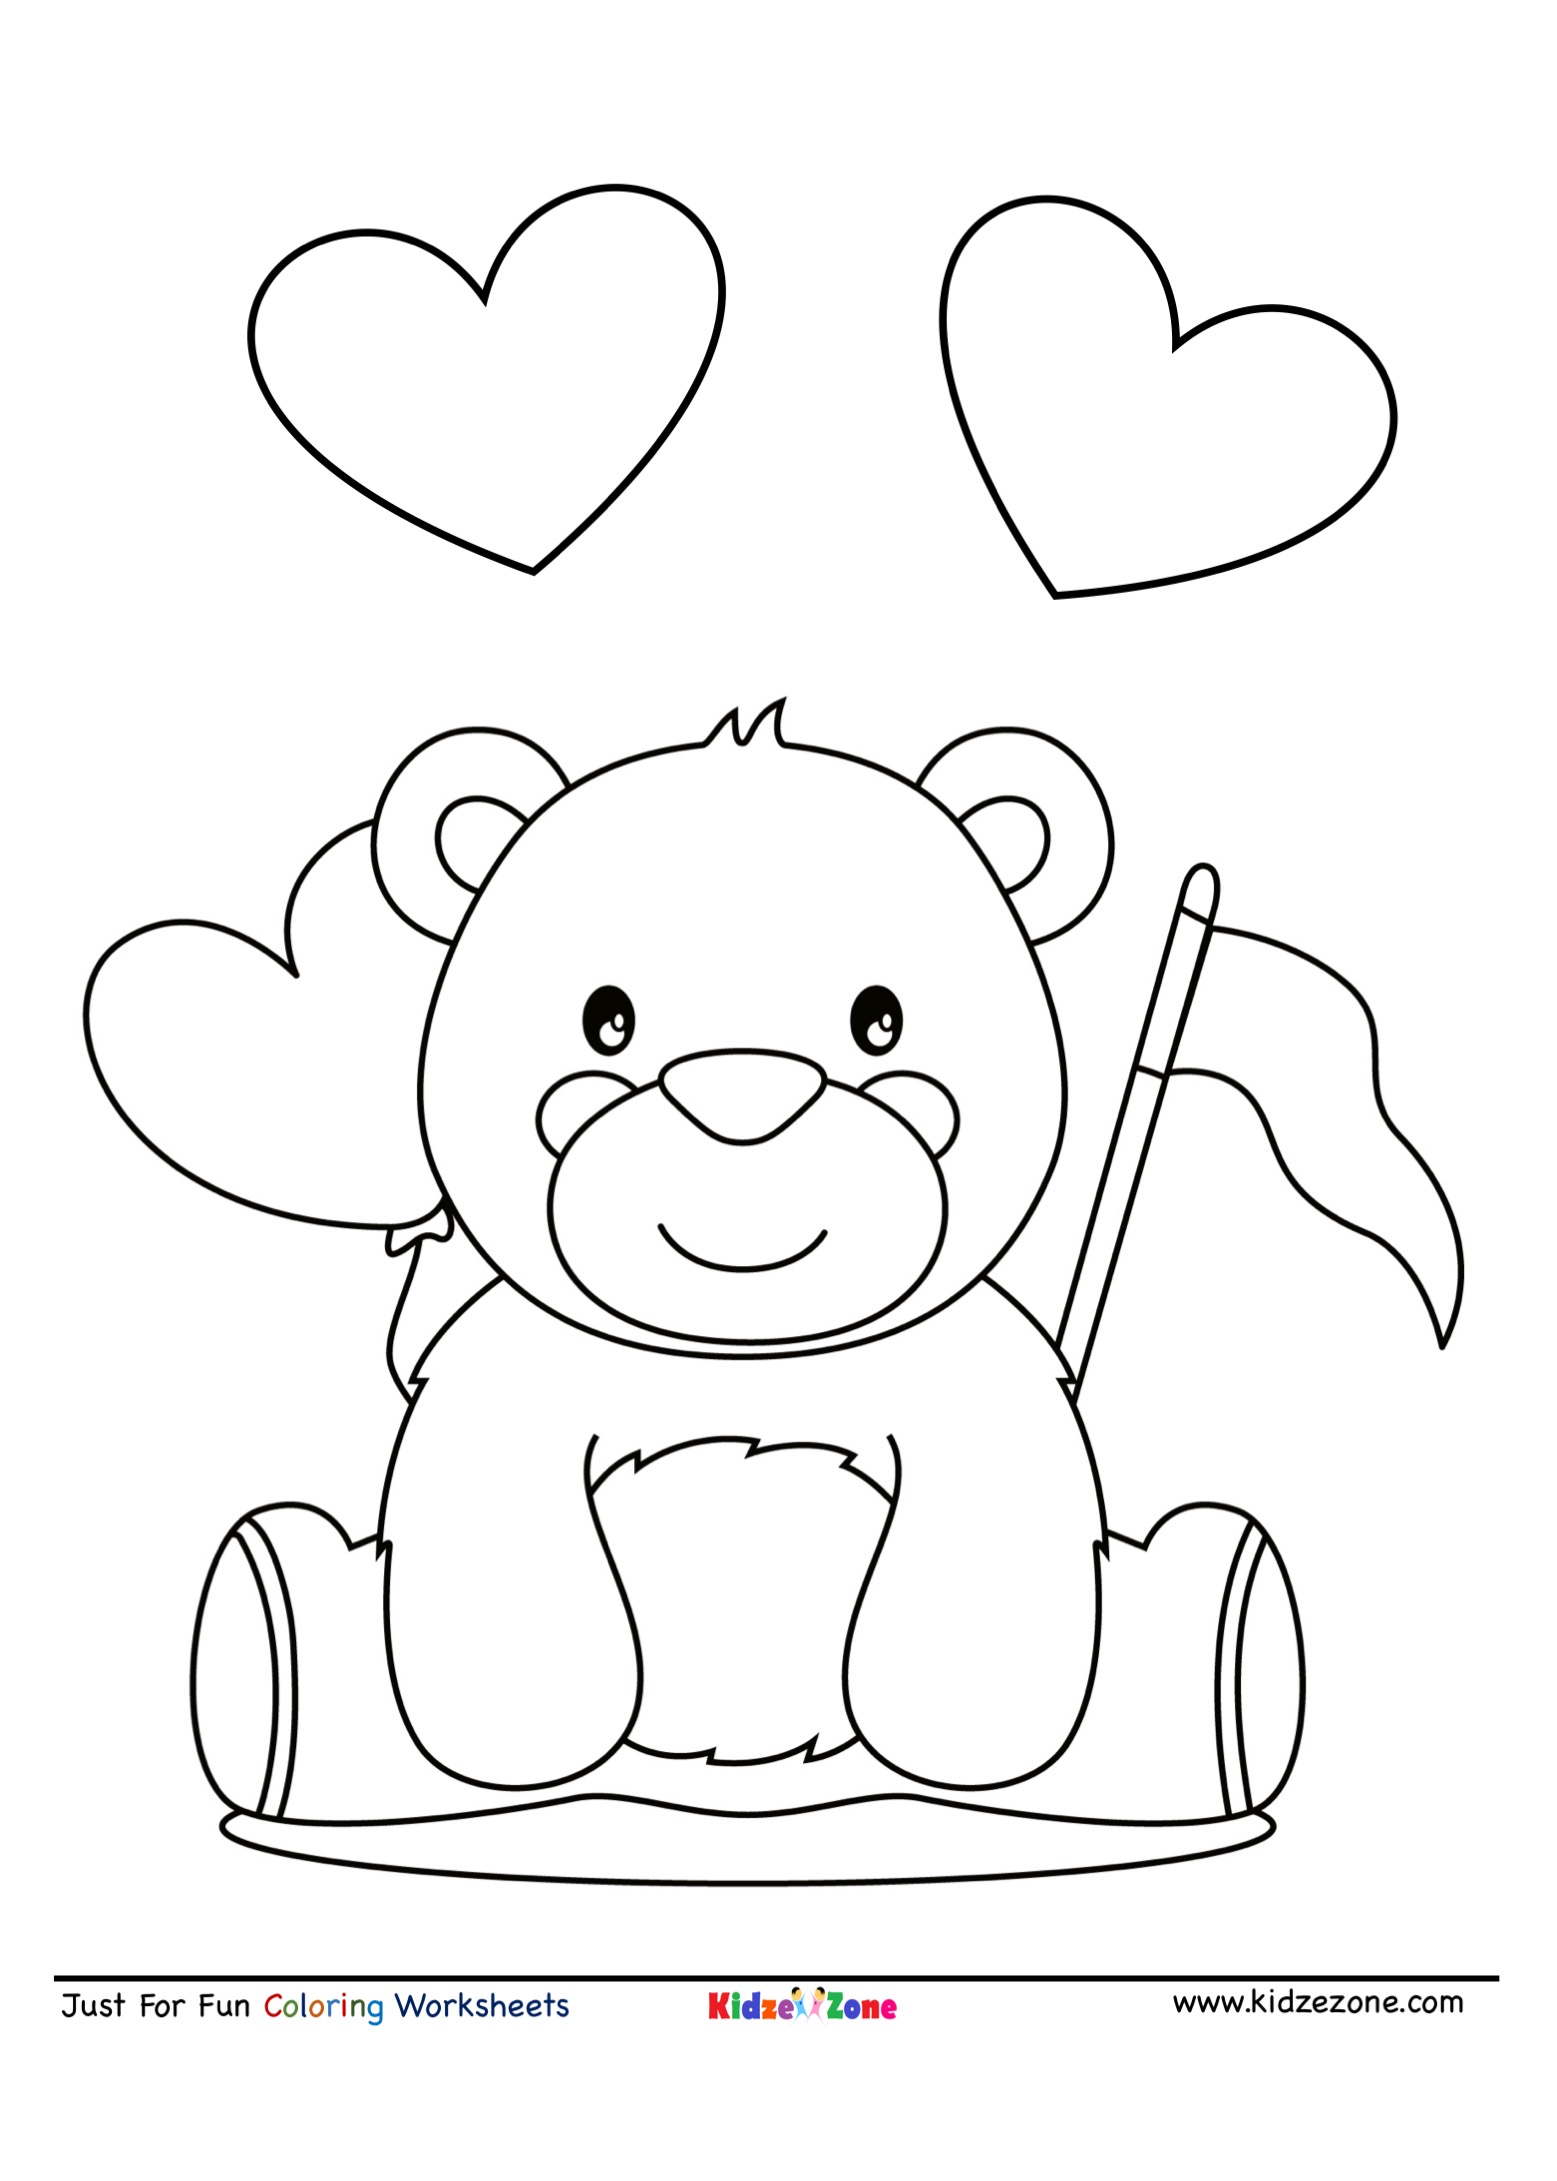 Cute Teddy Bear Coloring Page